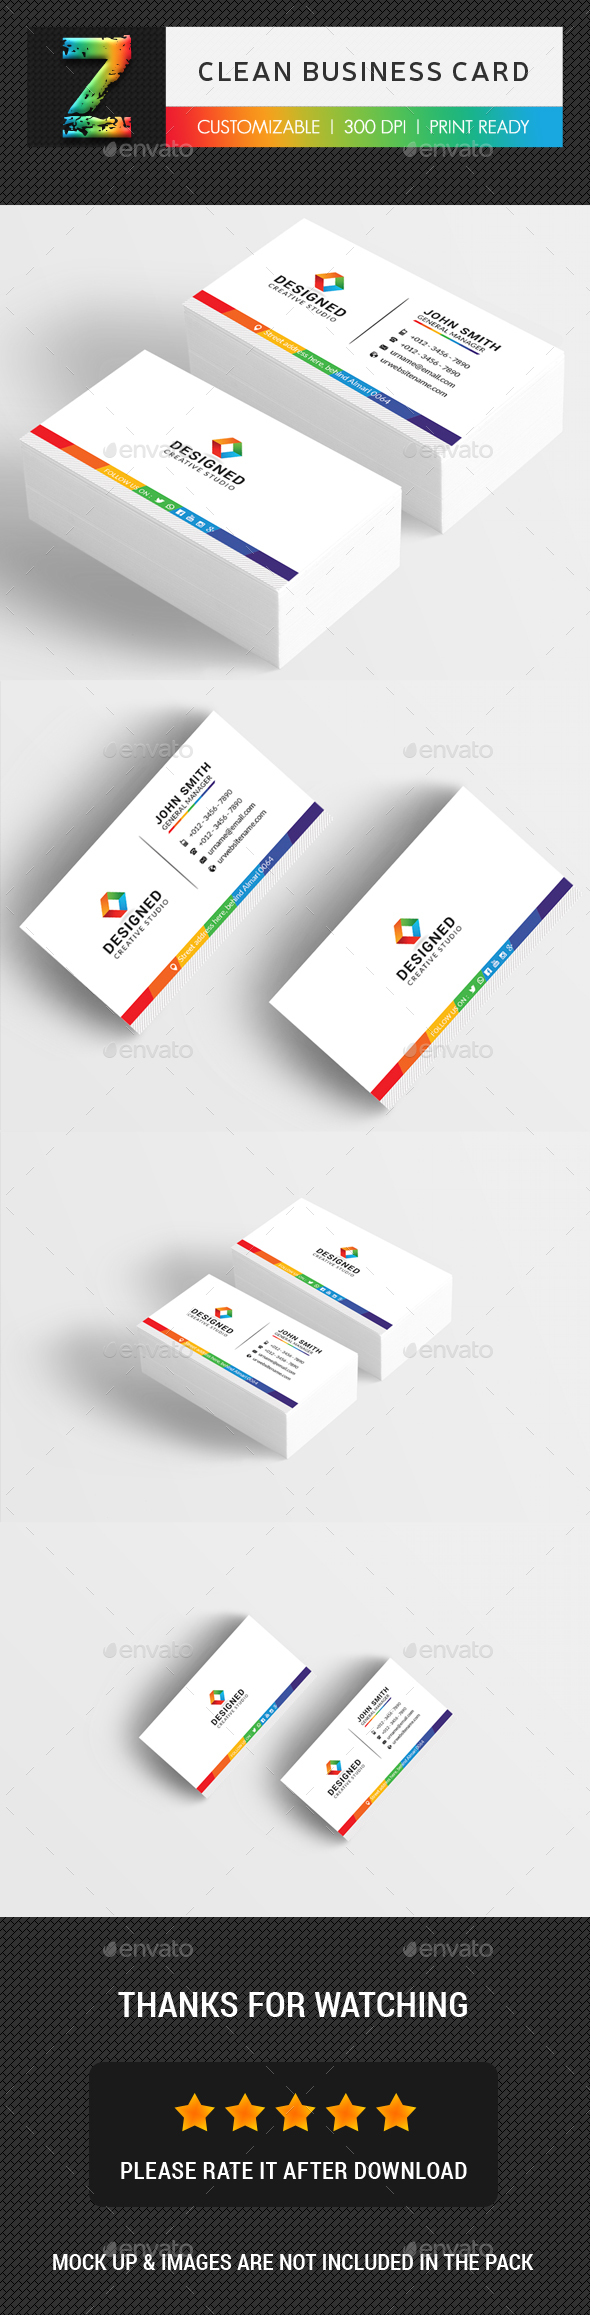 Clean Business Card Business Cards Print Templates Download Here Https Graphicriv Cleaning Business Cards Business Cards Creative Printing Business Cards